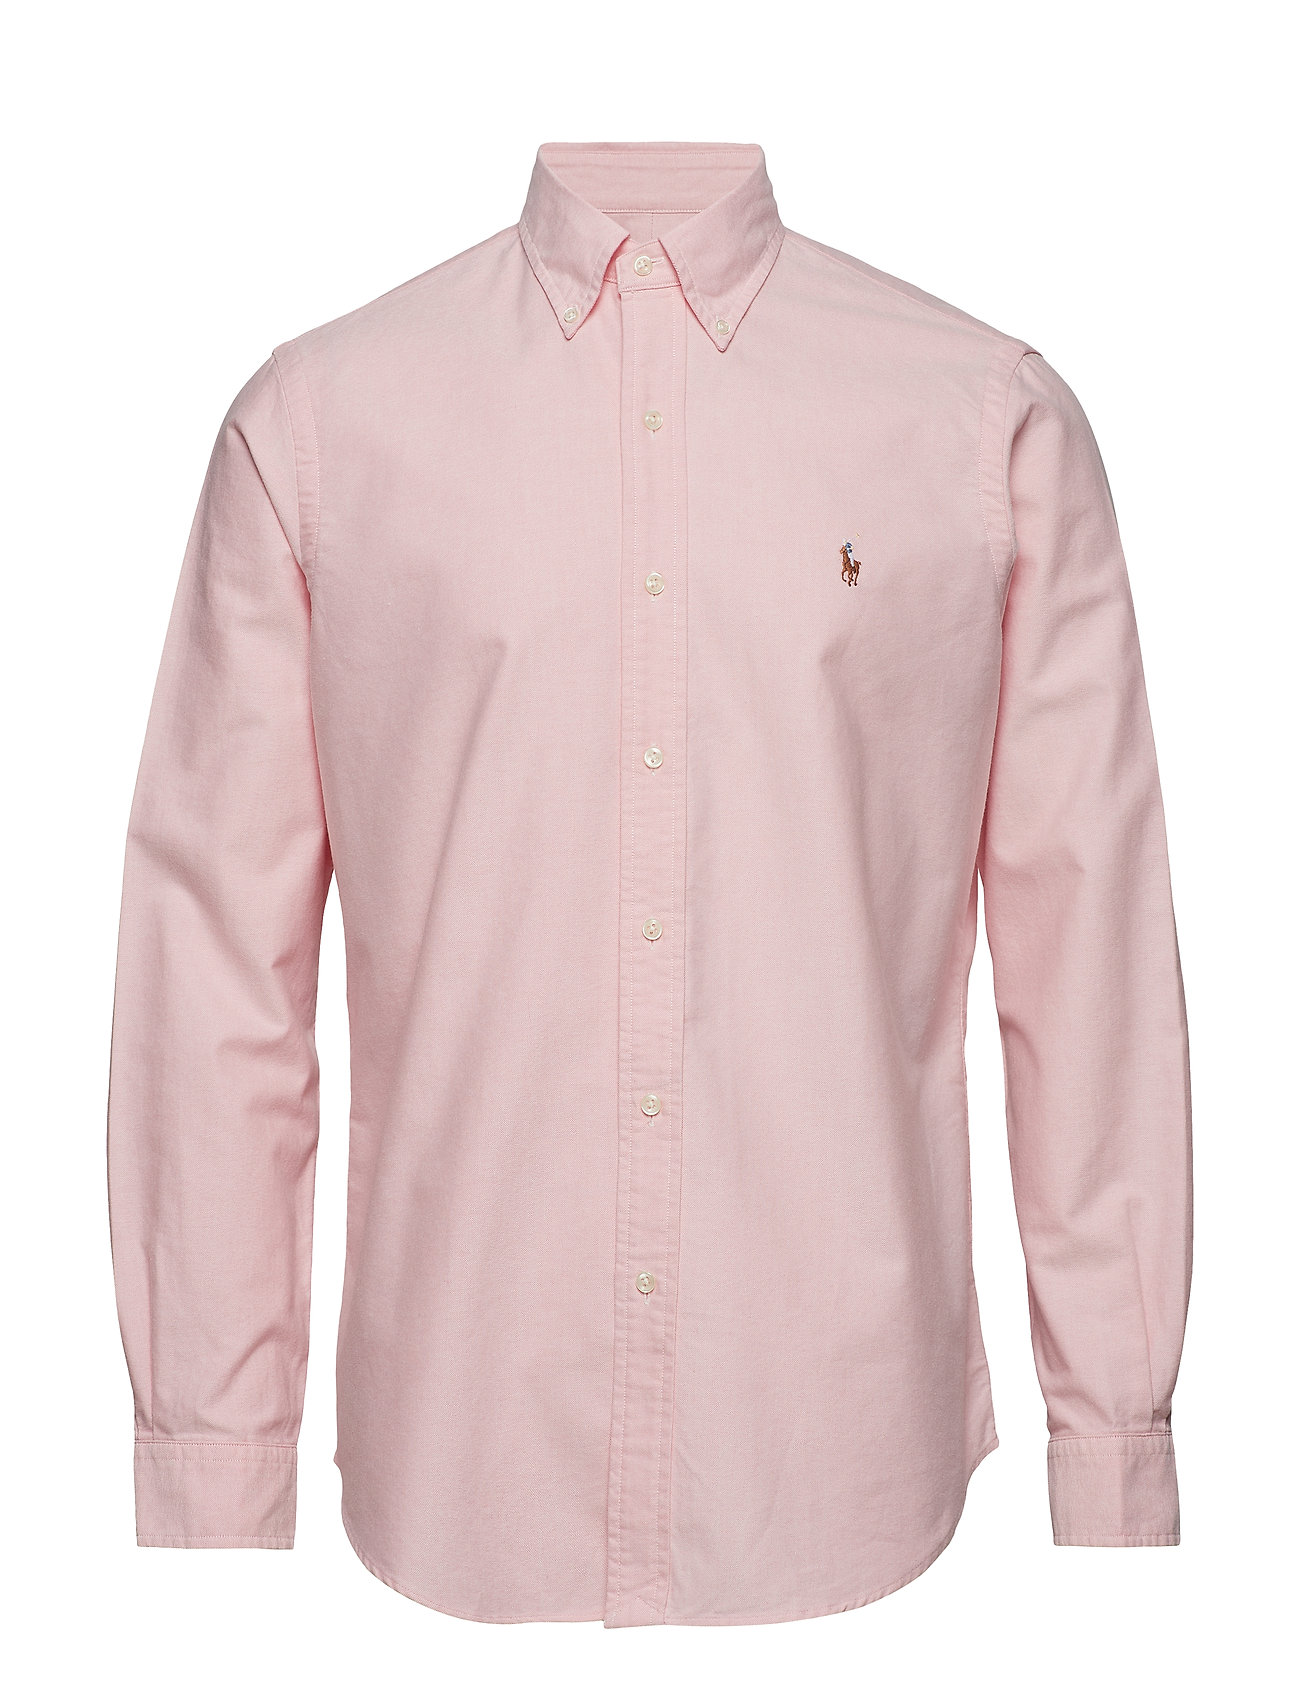 Polo Ralph Lauren Custom Fit Cotton Oxford Shirt - BSR PINK